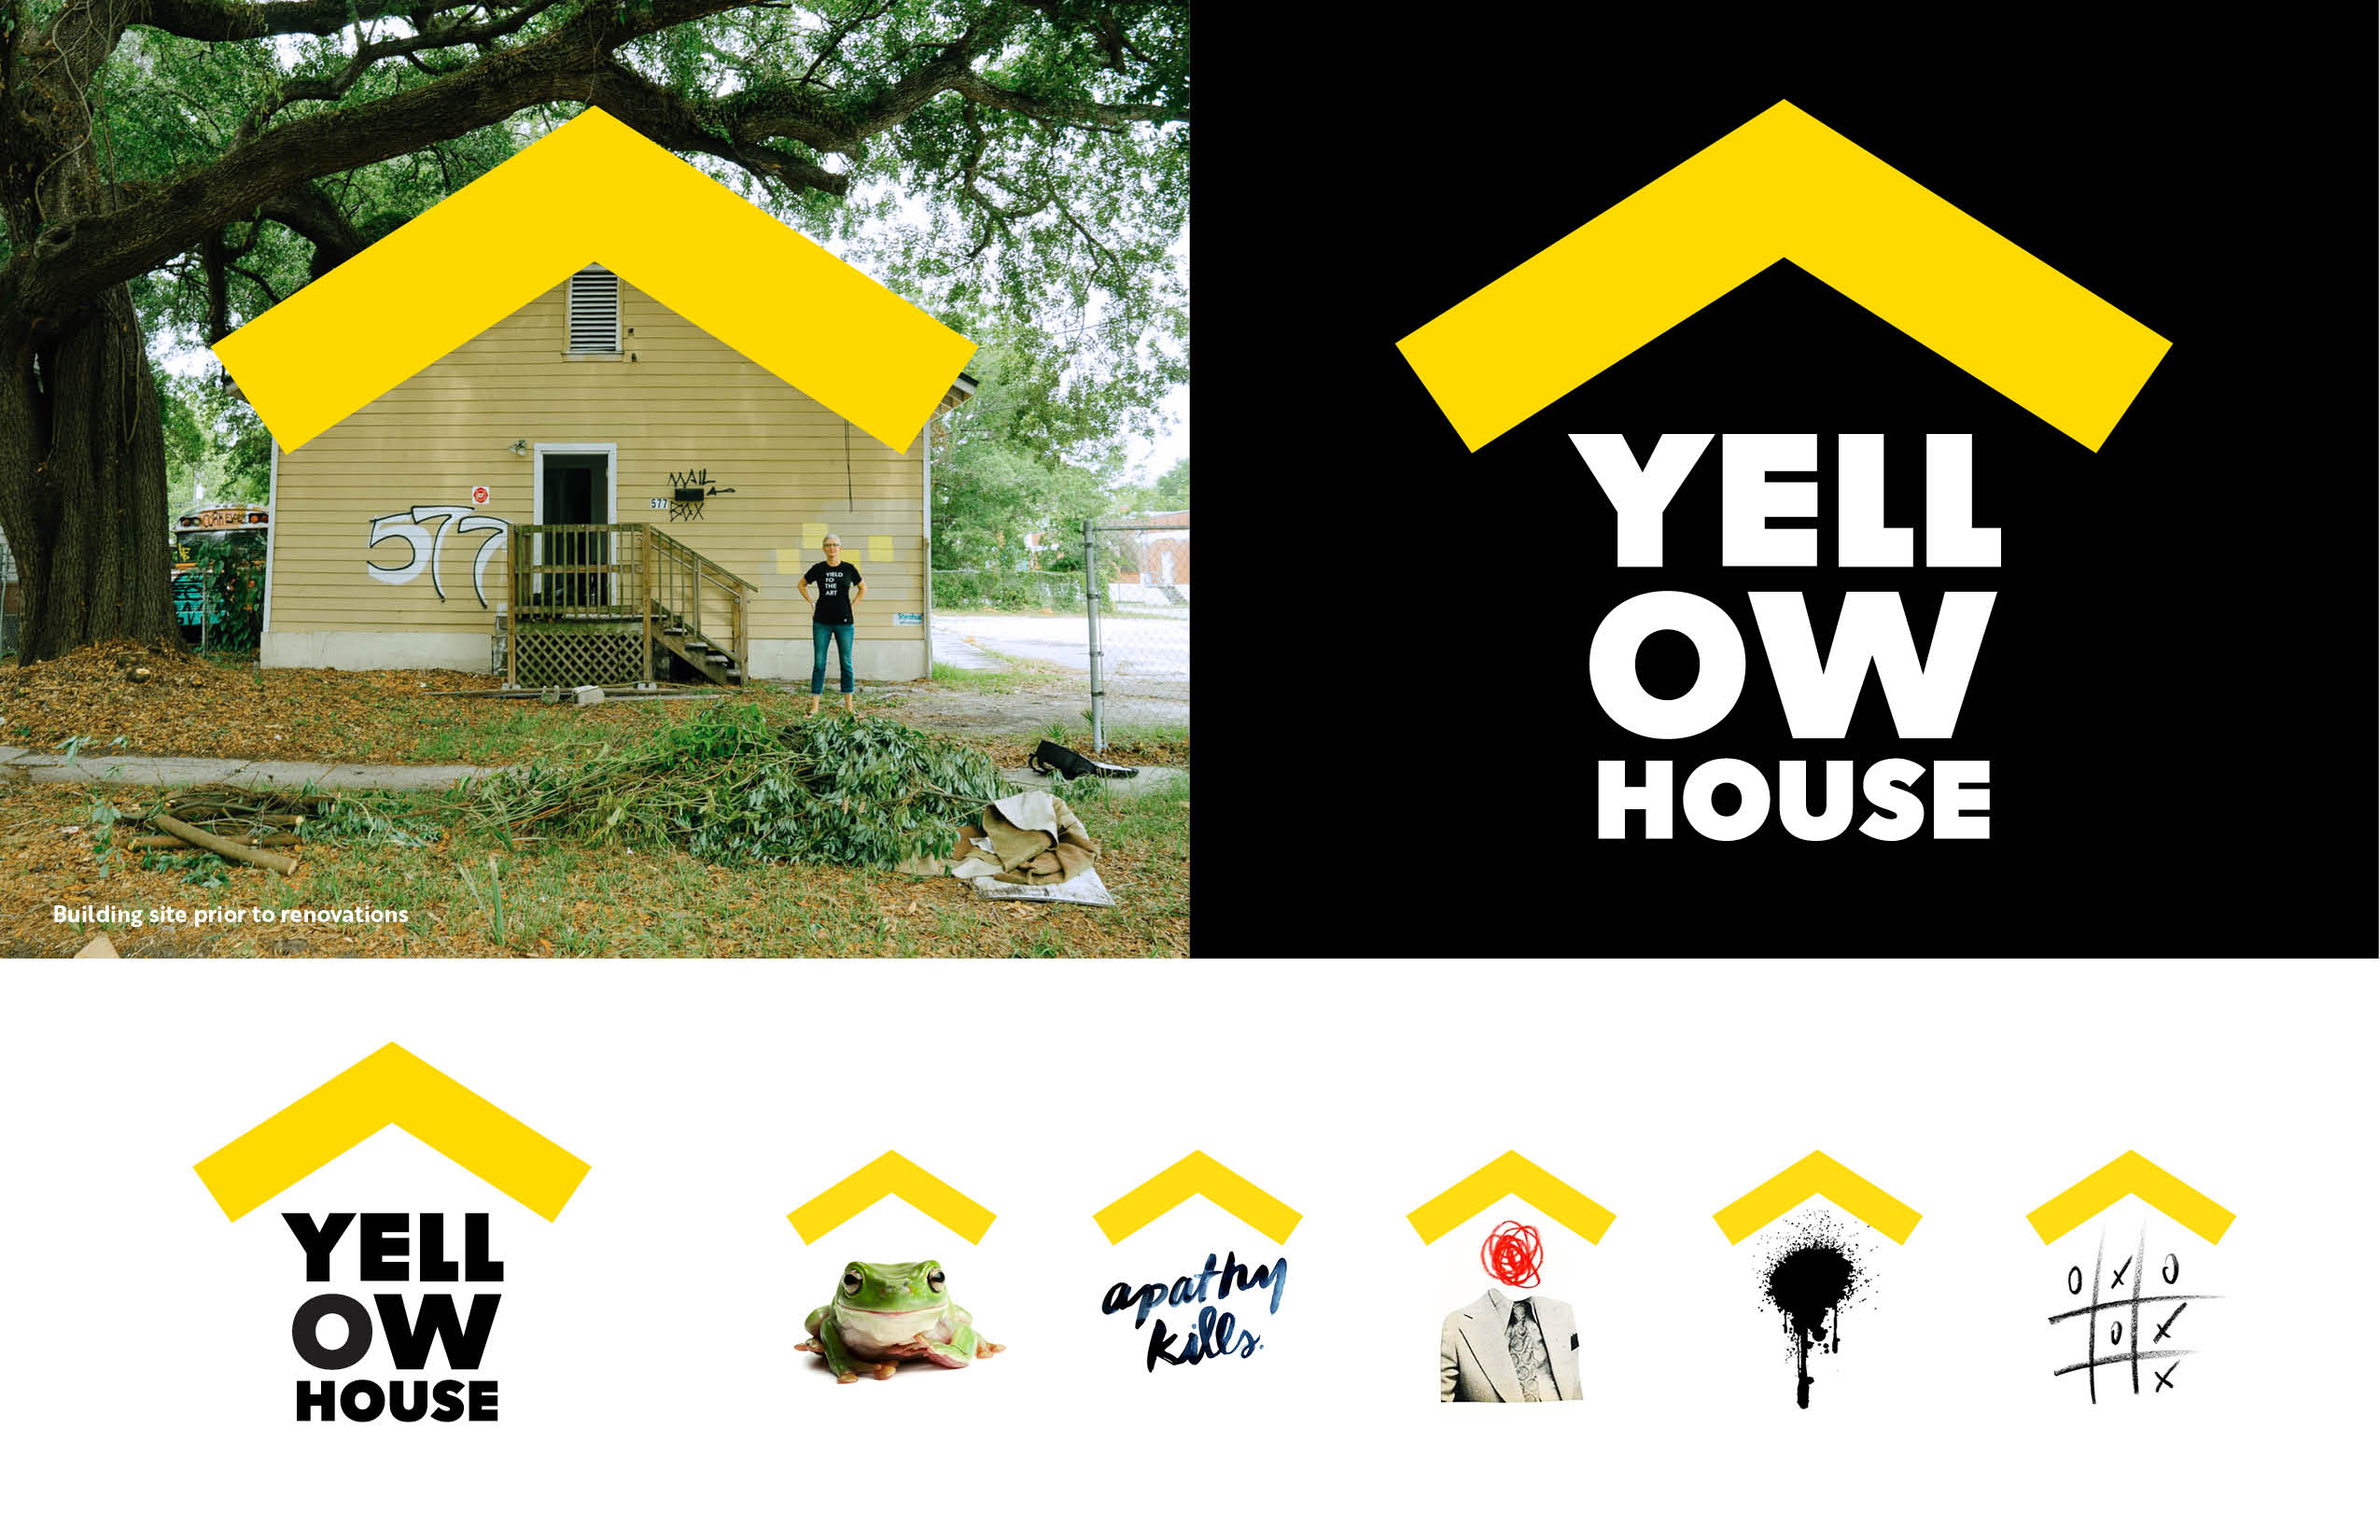 A photo of Yellow House on the left shows the roofline as the inspiration for the final logo on the right, and various uses paired with artwork are shown in a row of images below those two images.